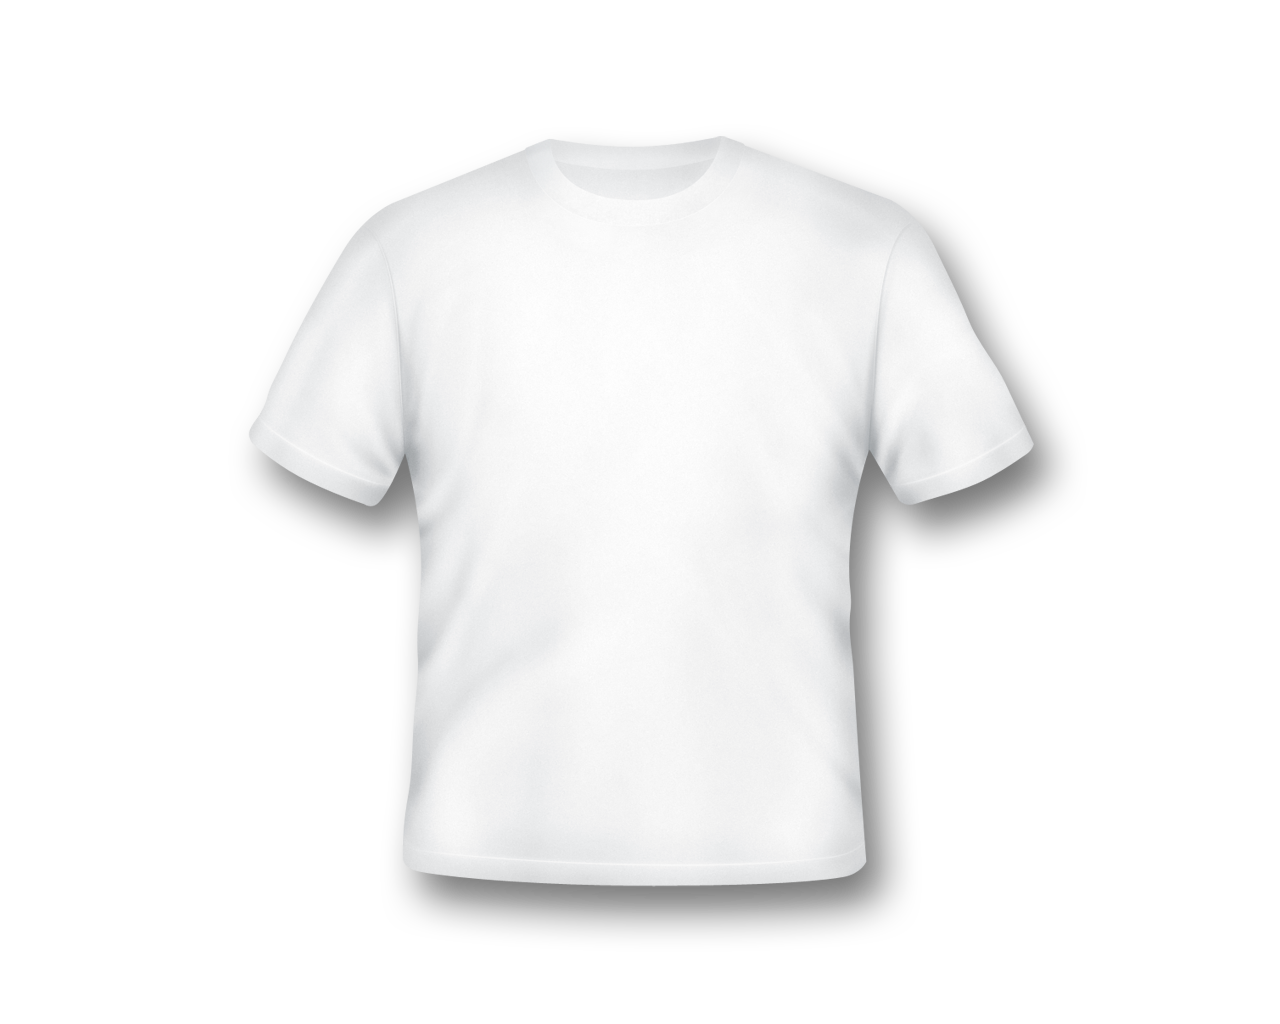 T shirt template png. Images transparent free download